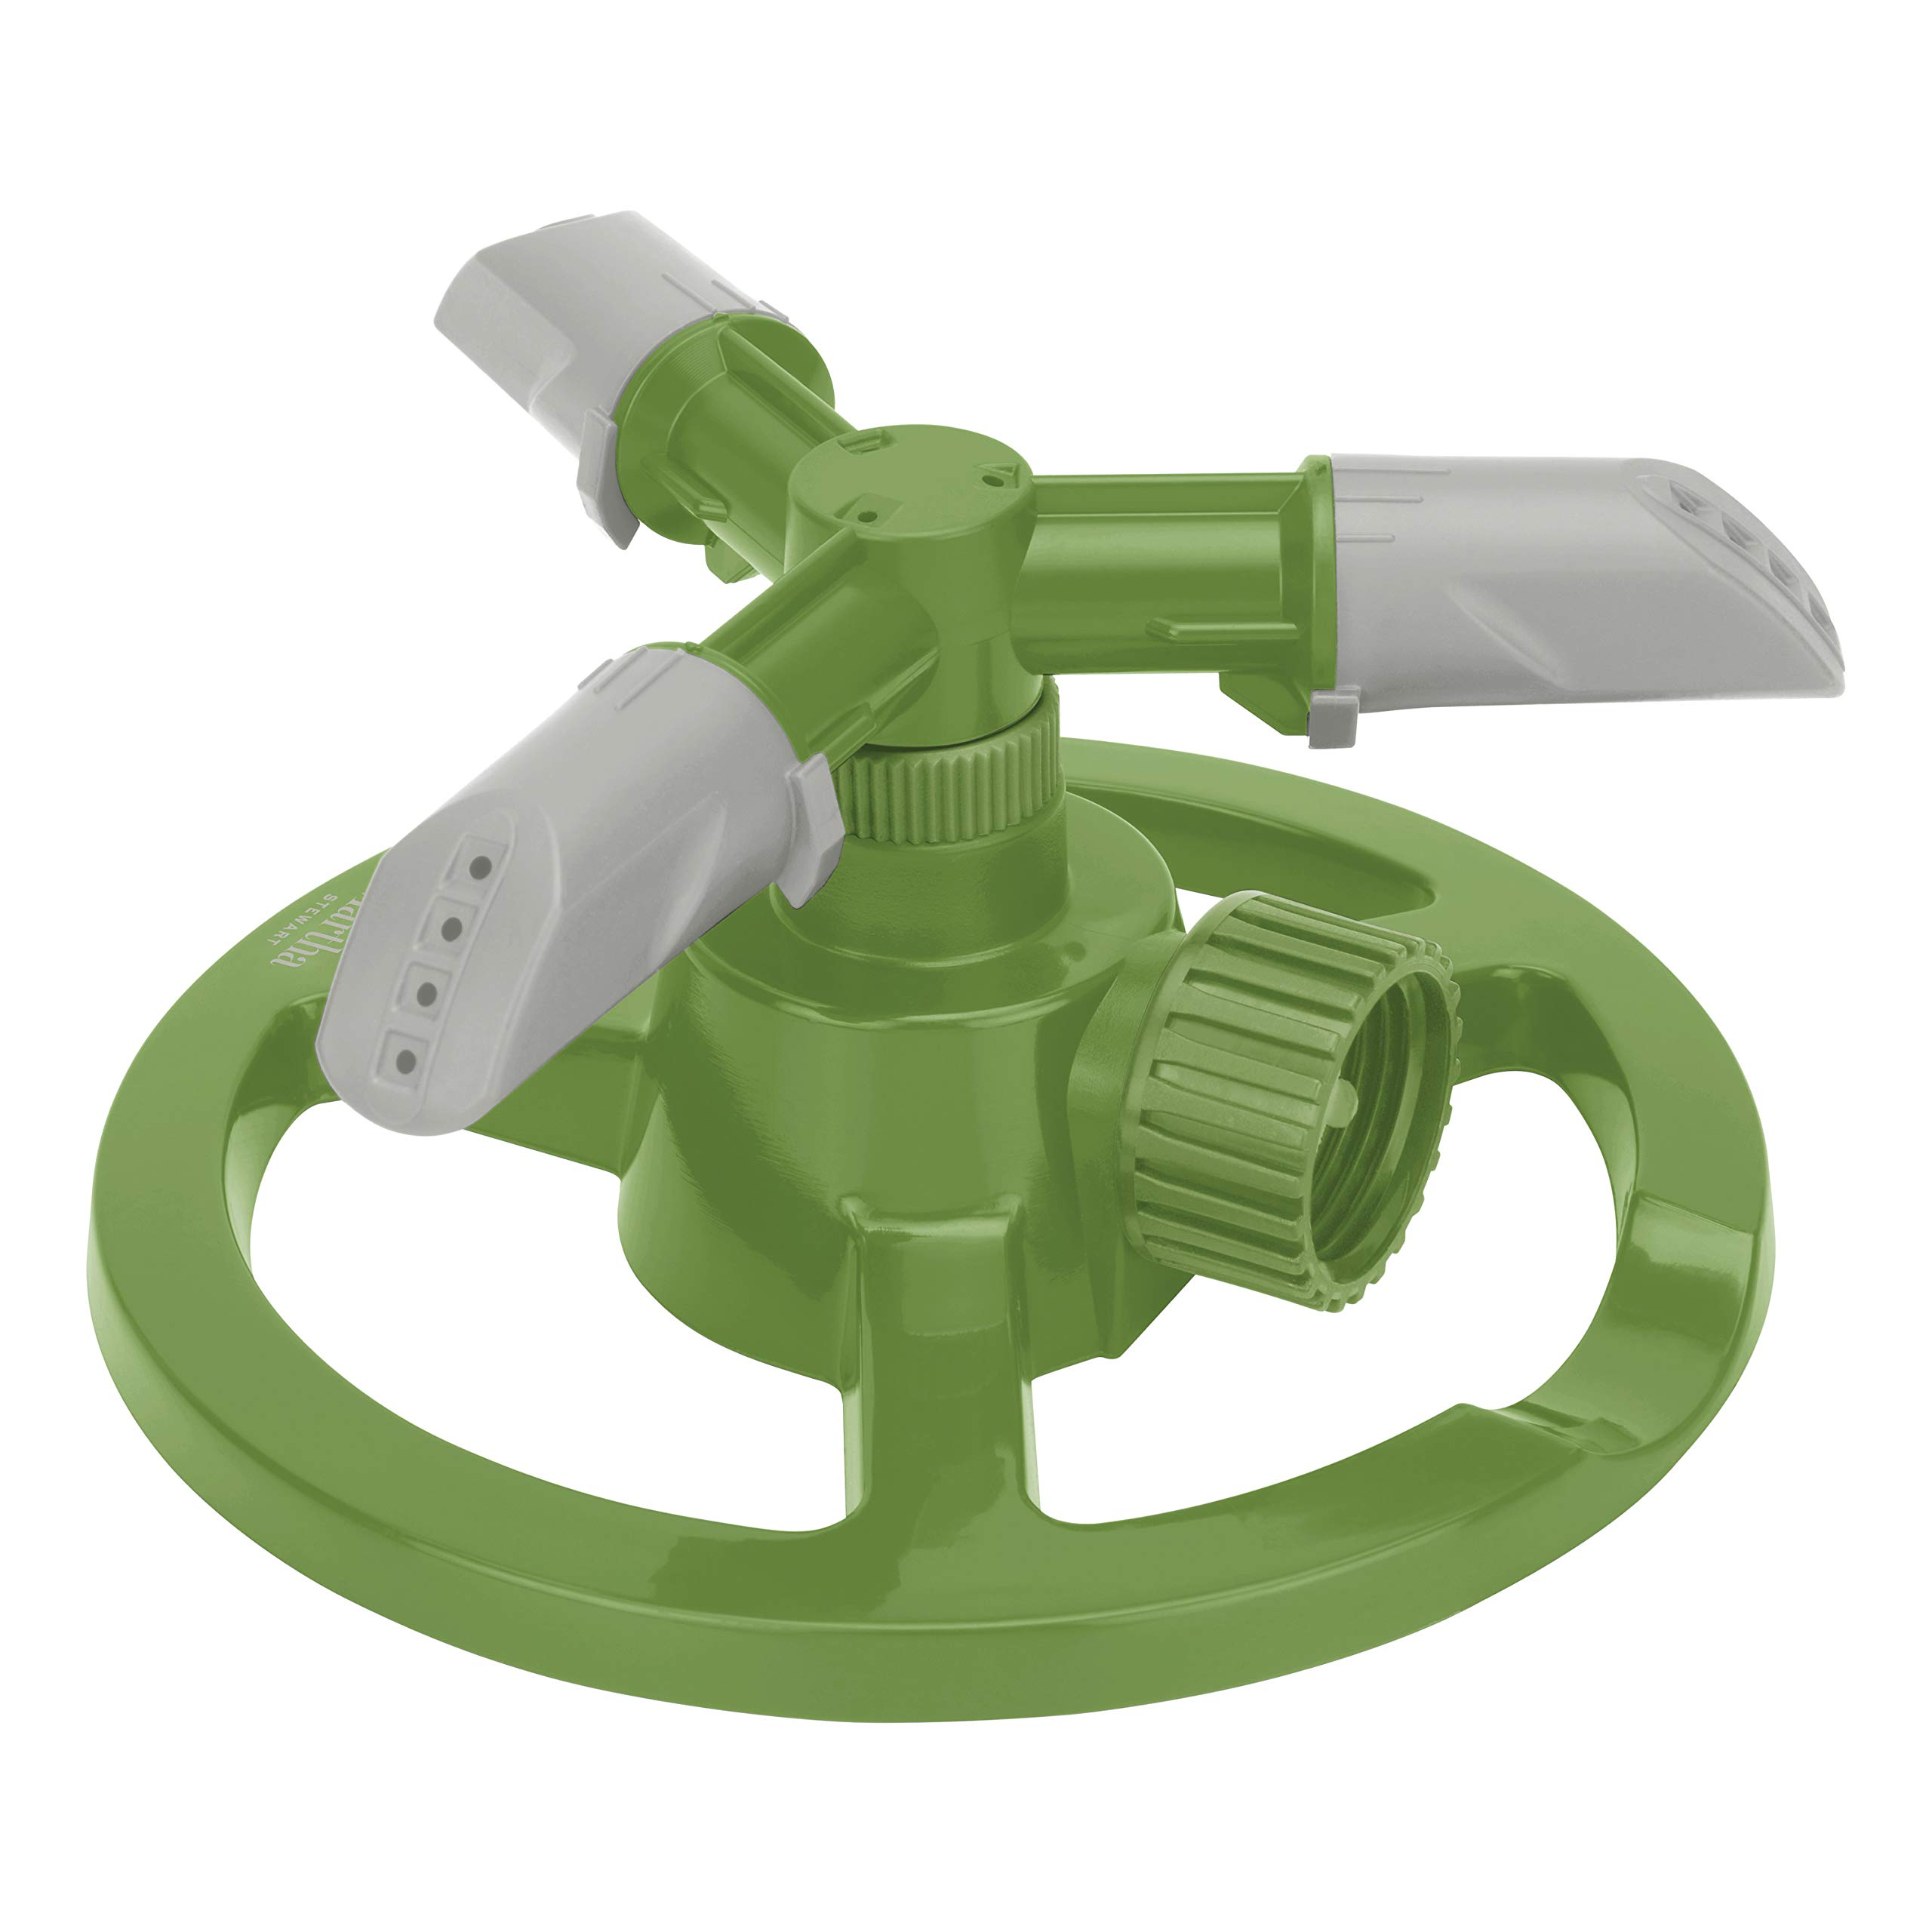 Martha Stewart MTS-CRSPR3 3-Arm Rotating Sprinkler w/High-Impact-Resistant Circle Base, Gardening